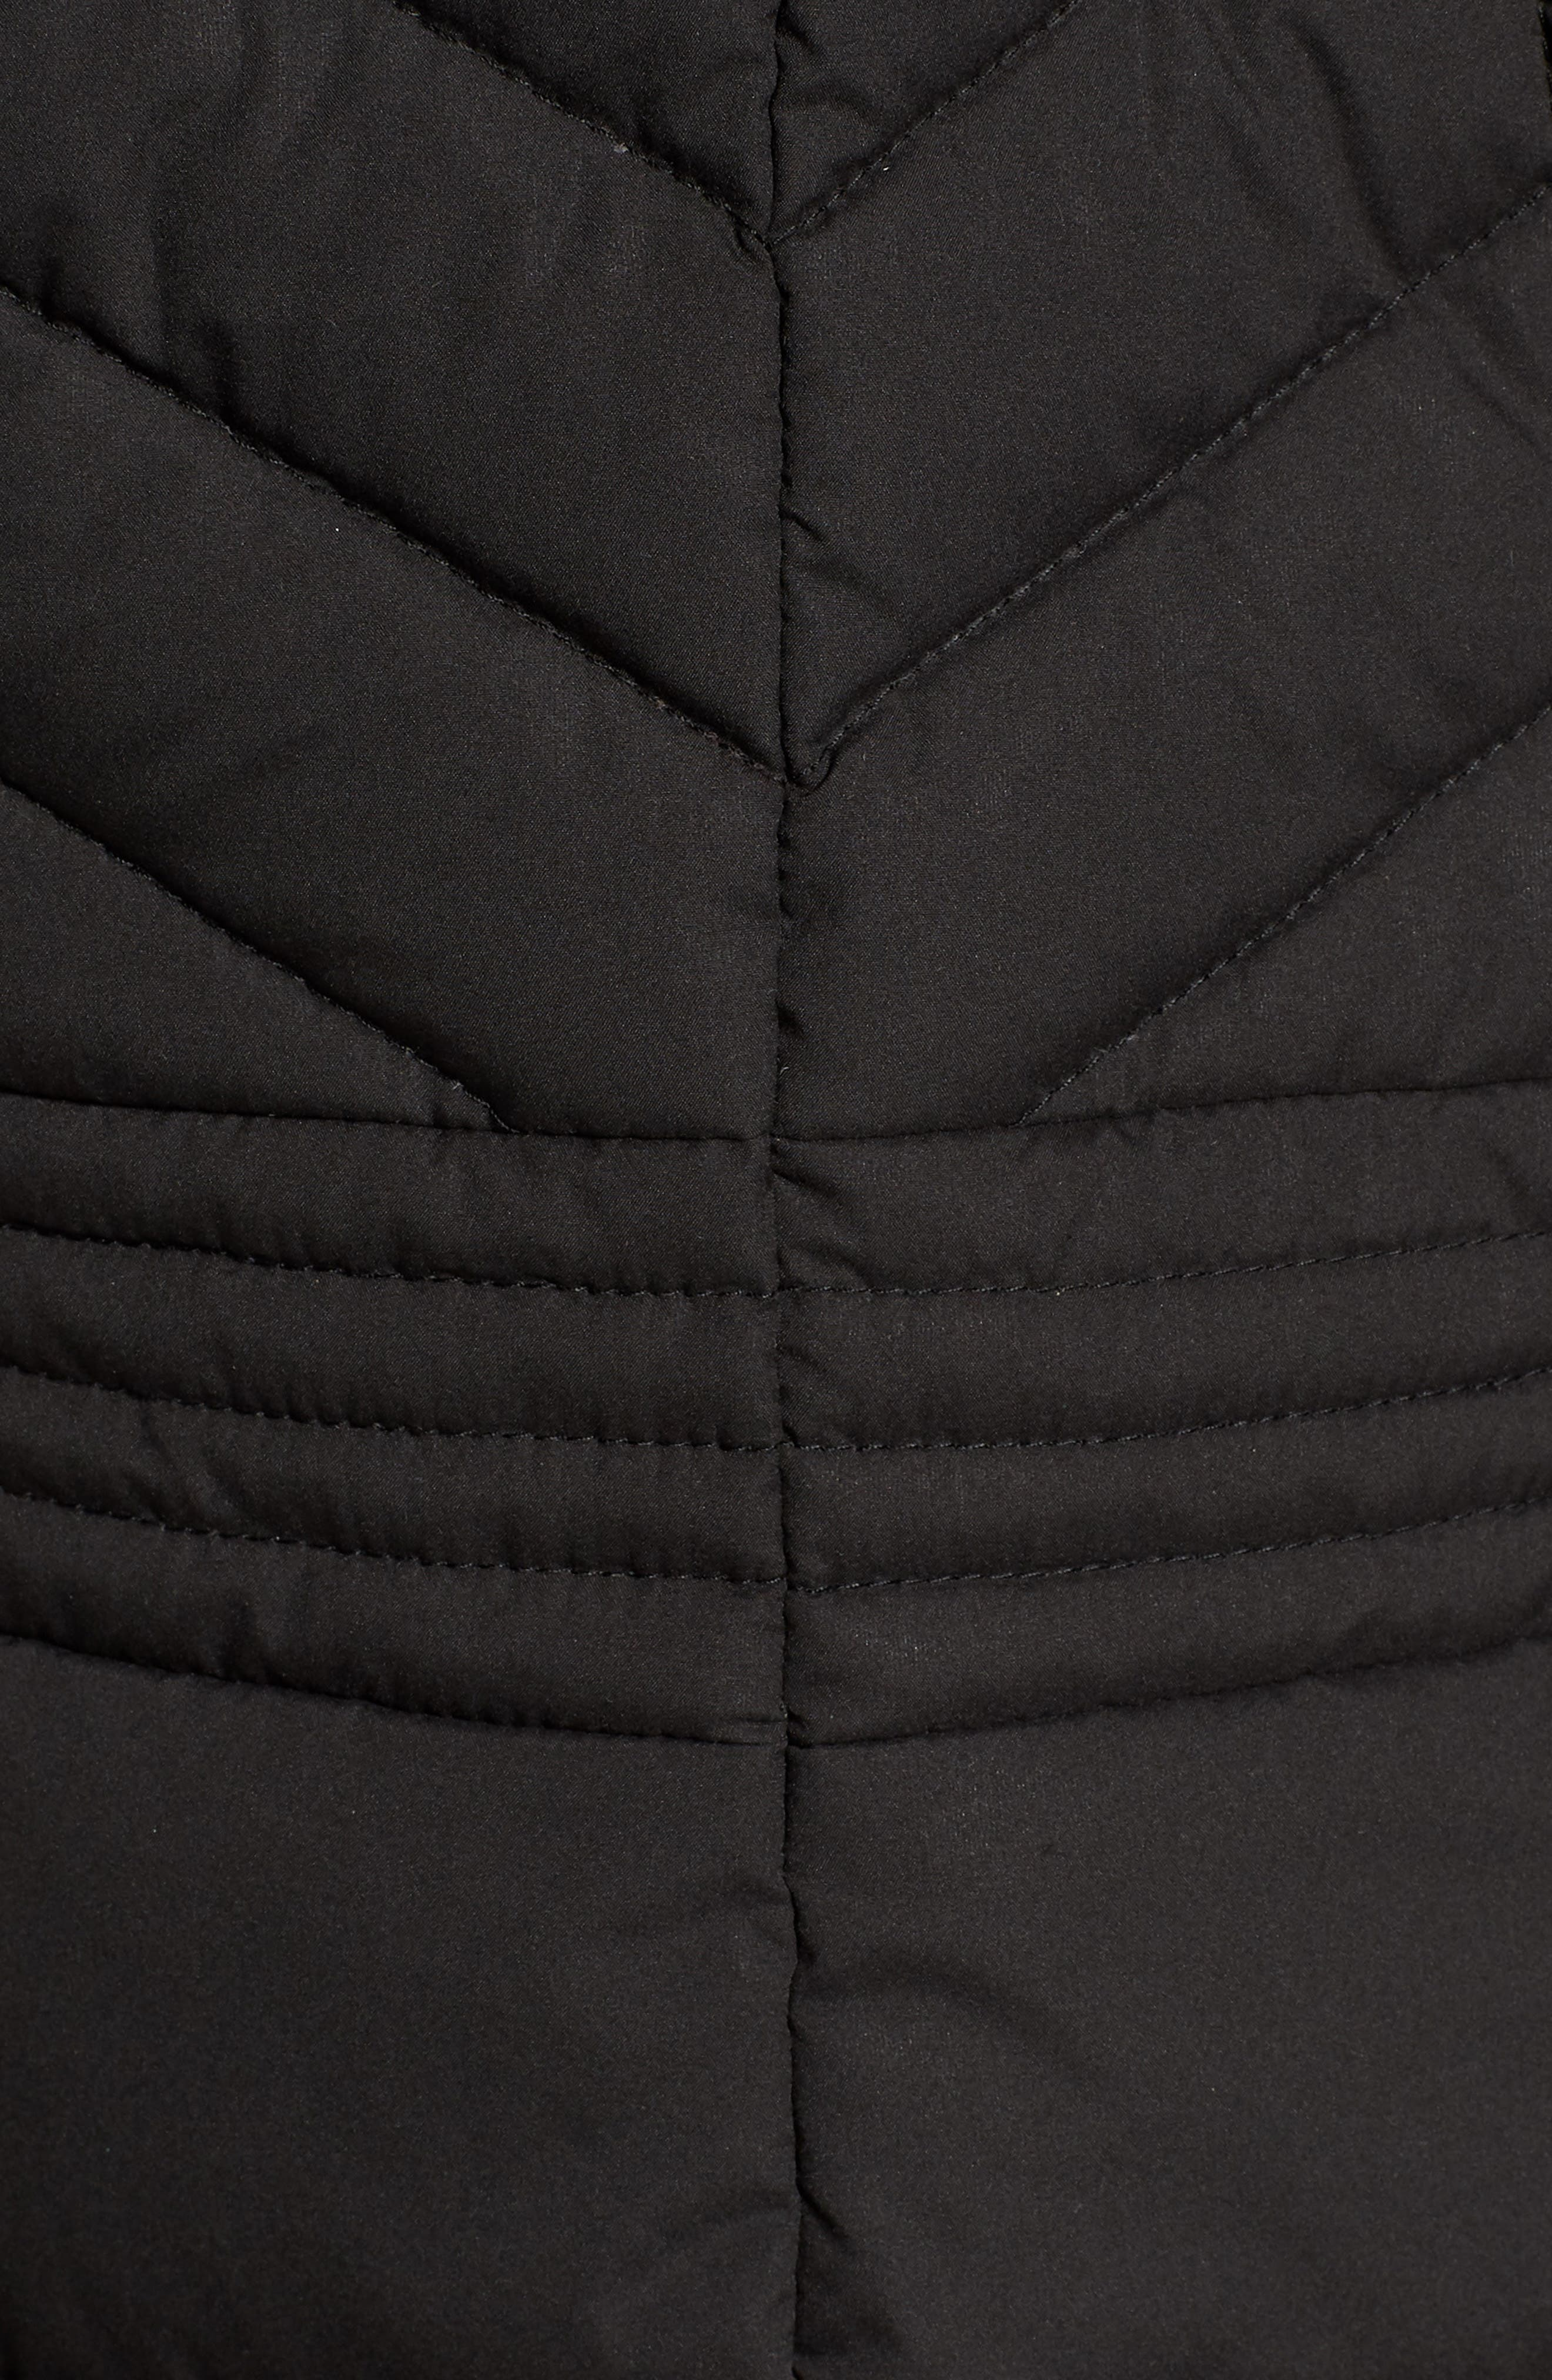 Stretch Quilted Walker Coat,                             Alternate thumbnail 7, color,                             001